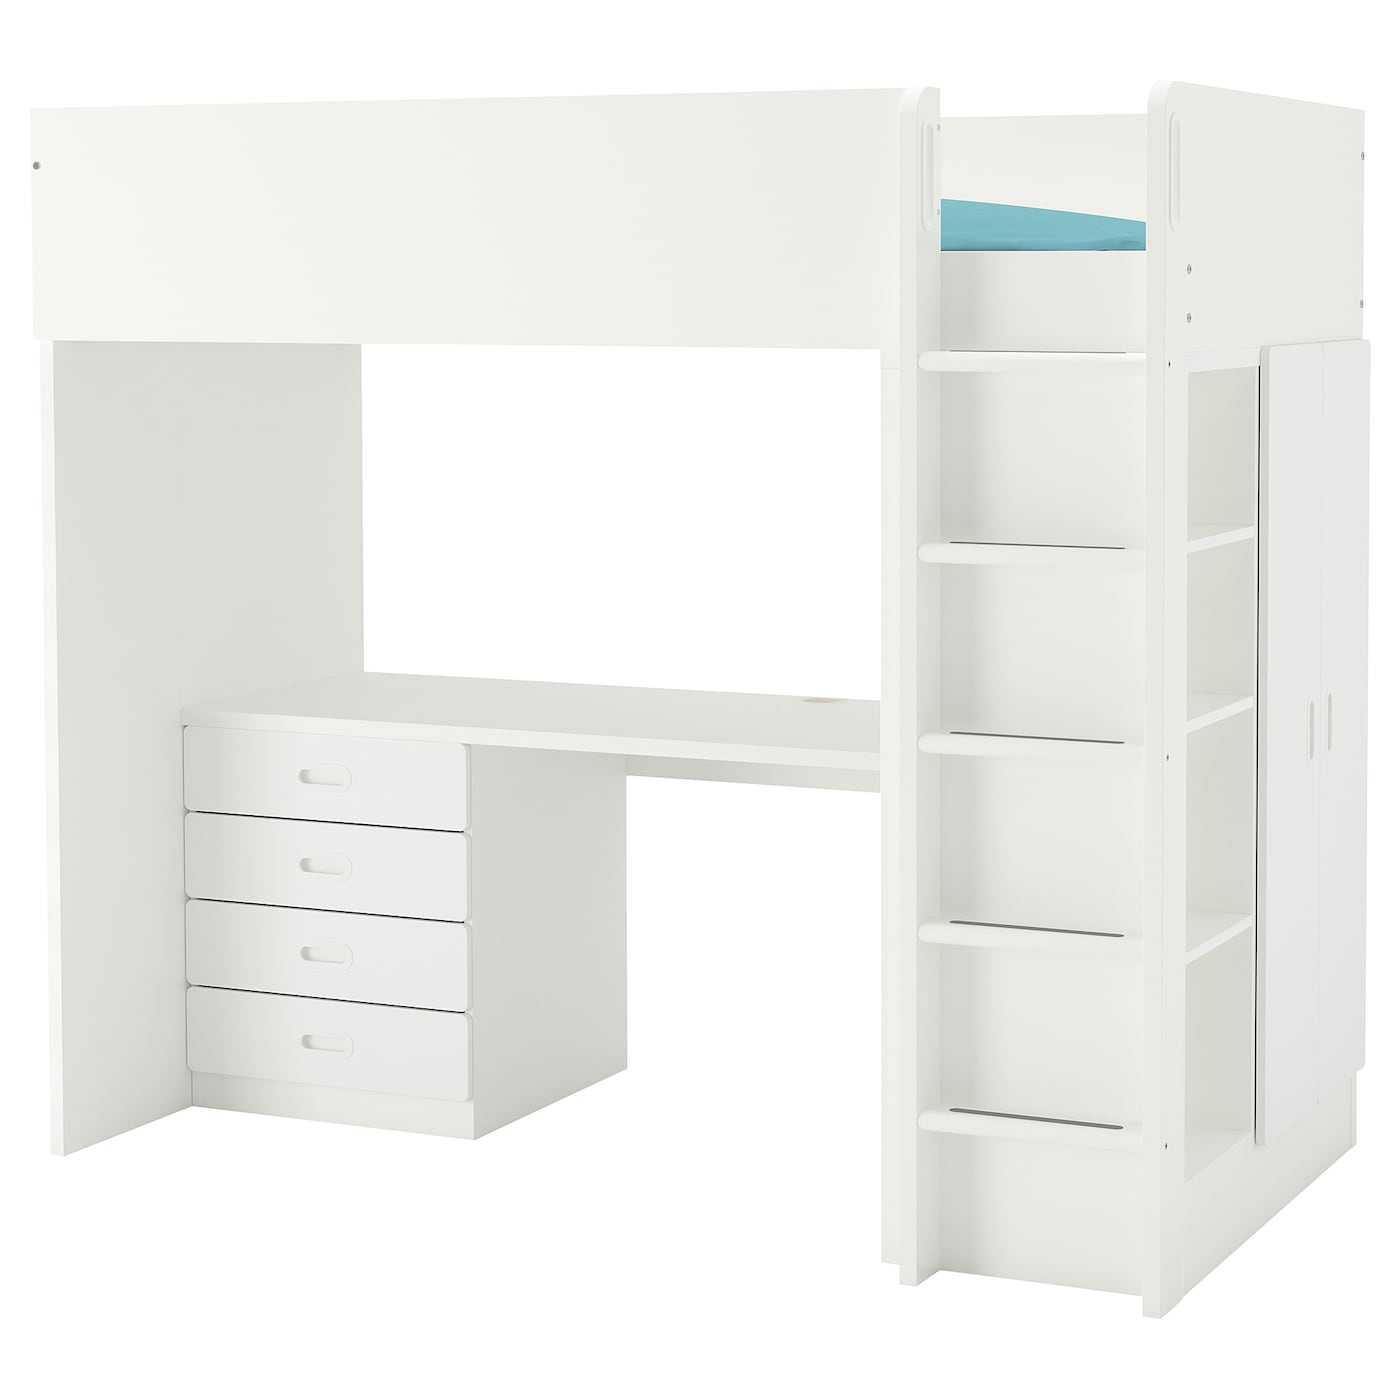 fritids stuva combi lit mezz 4 tir 2 ptes blanc blanc 207 x 99 x 182 cm ikea. Black Bedroom Furniture Sets. Home Design Ideas